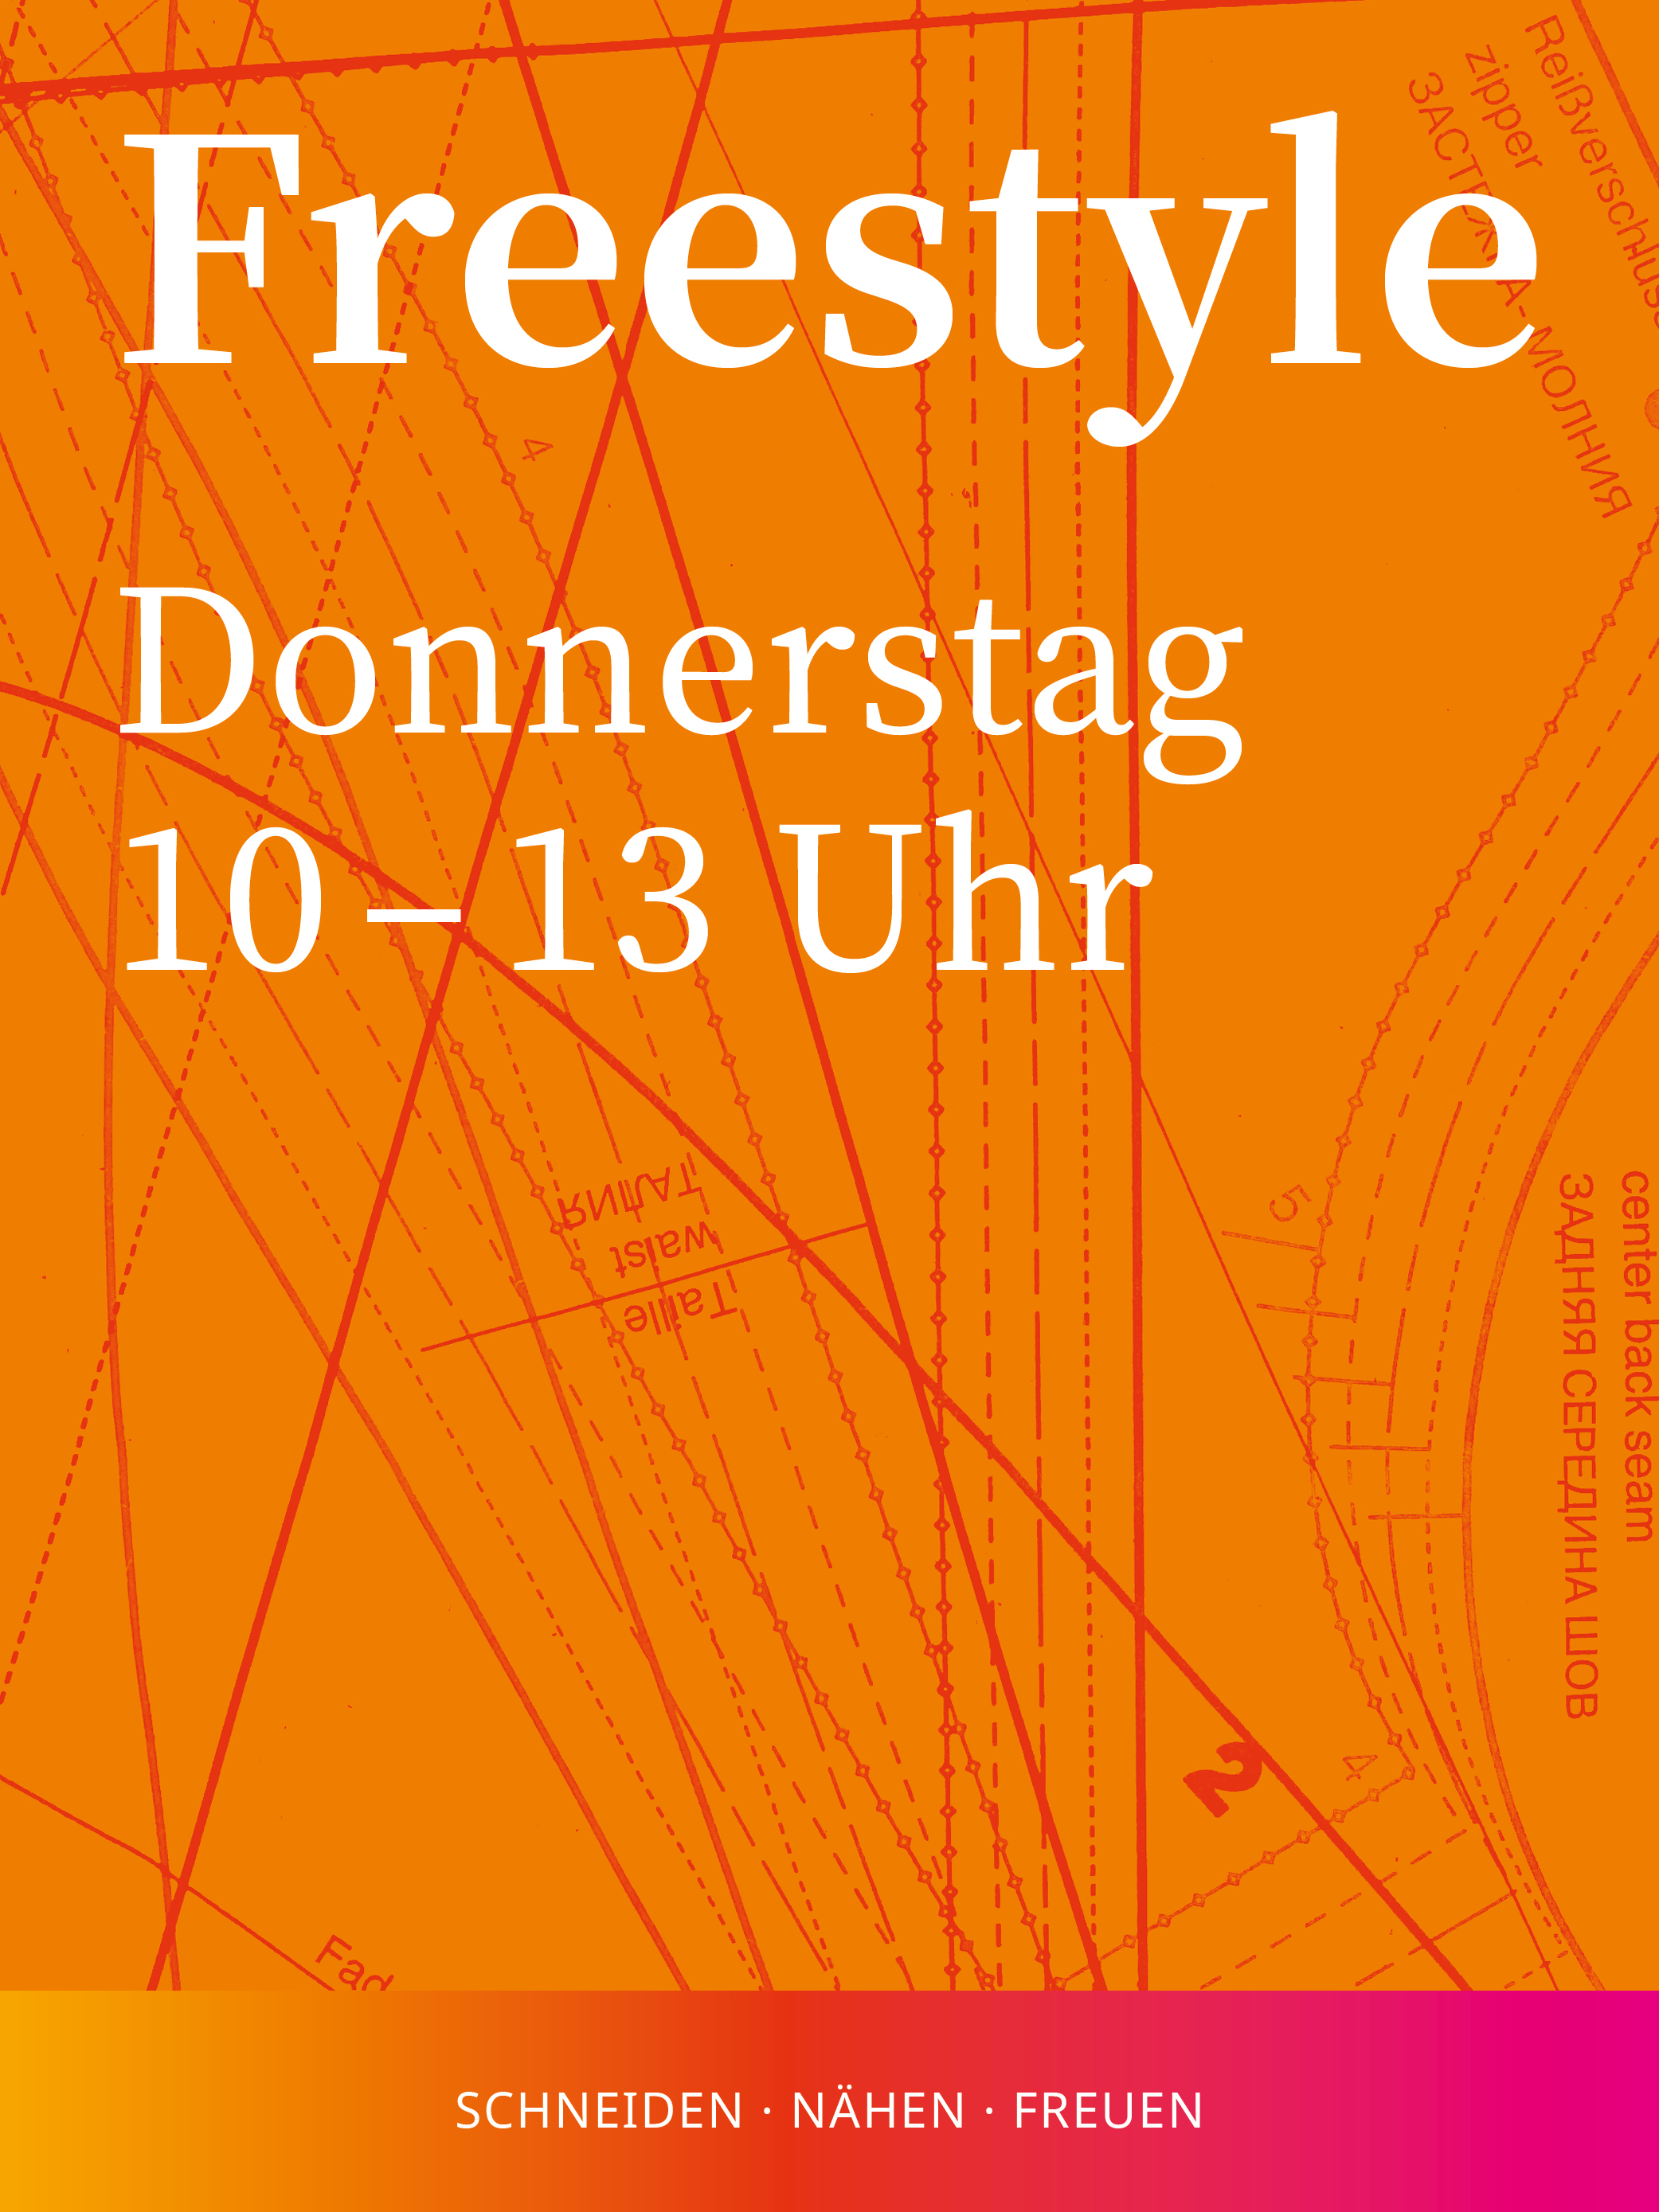 Freestyle | Donnerstag 10-13 Uhr